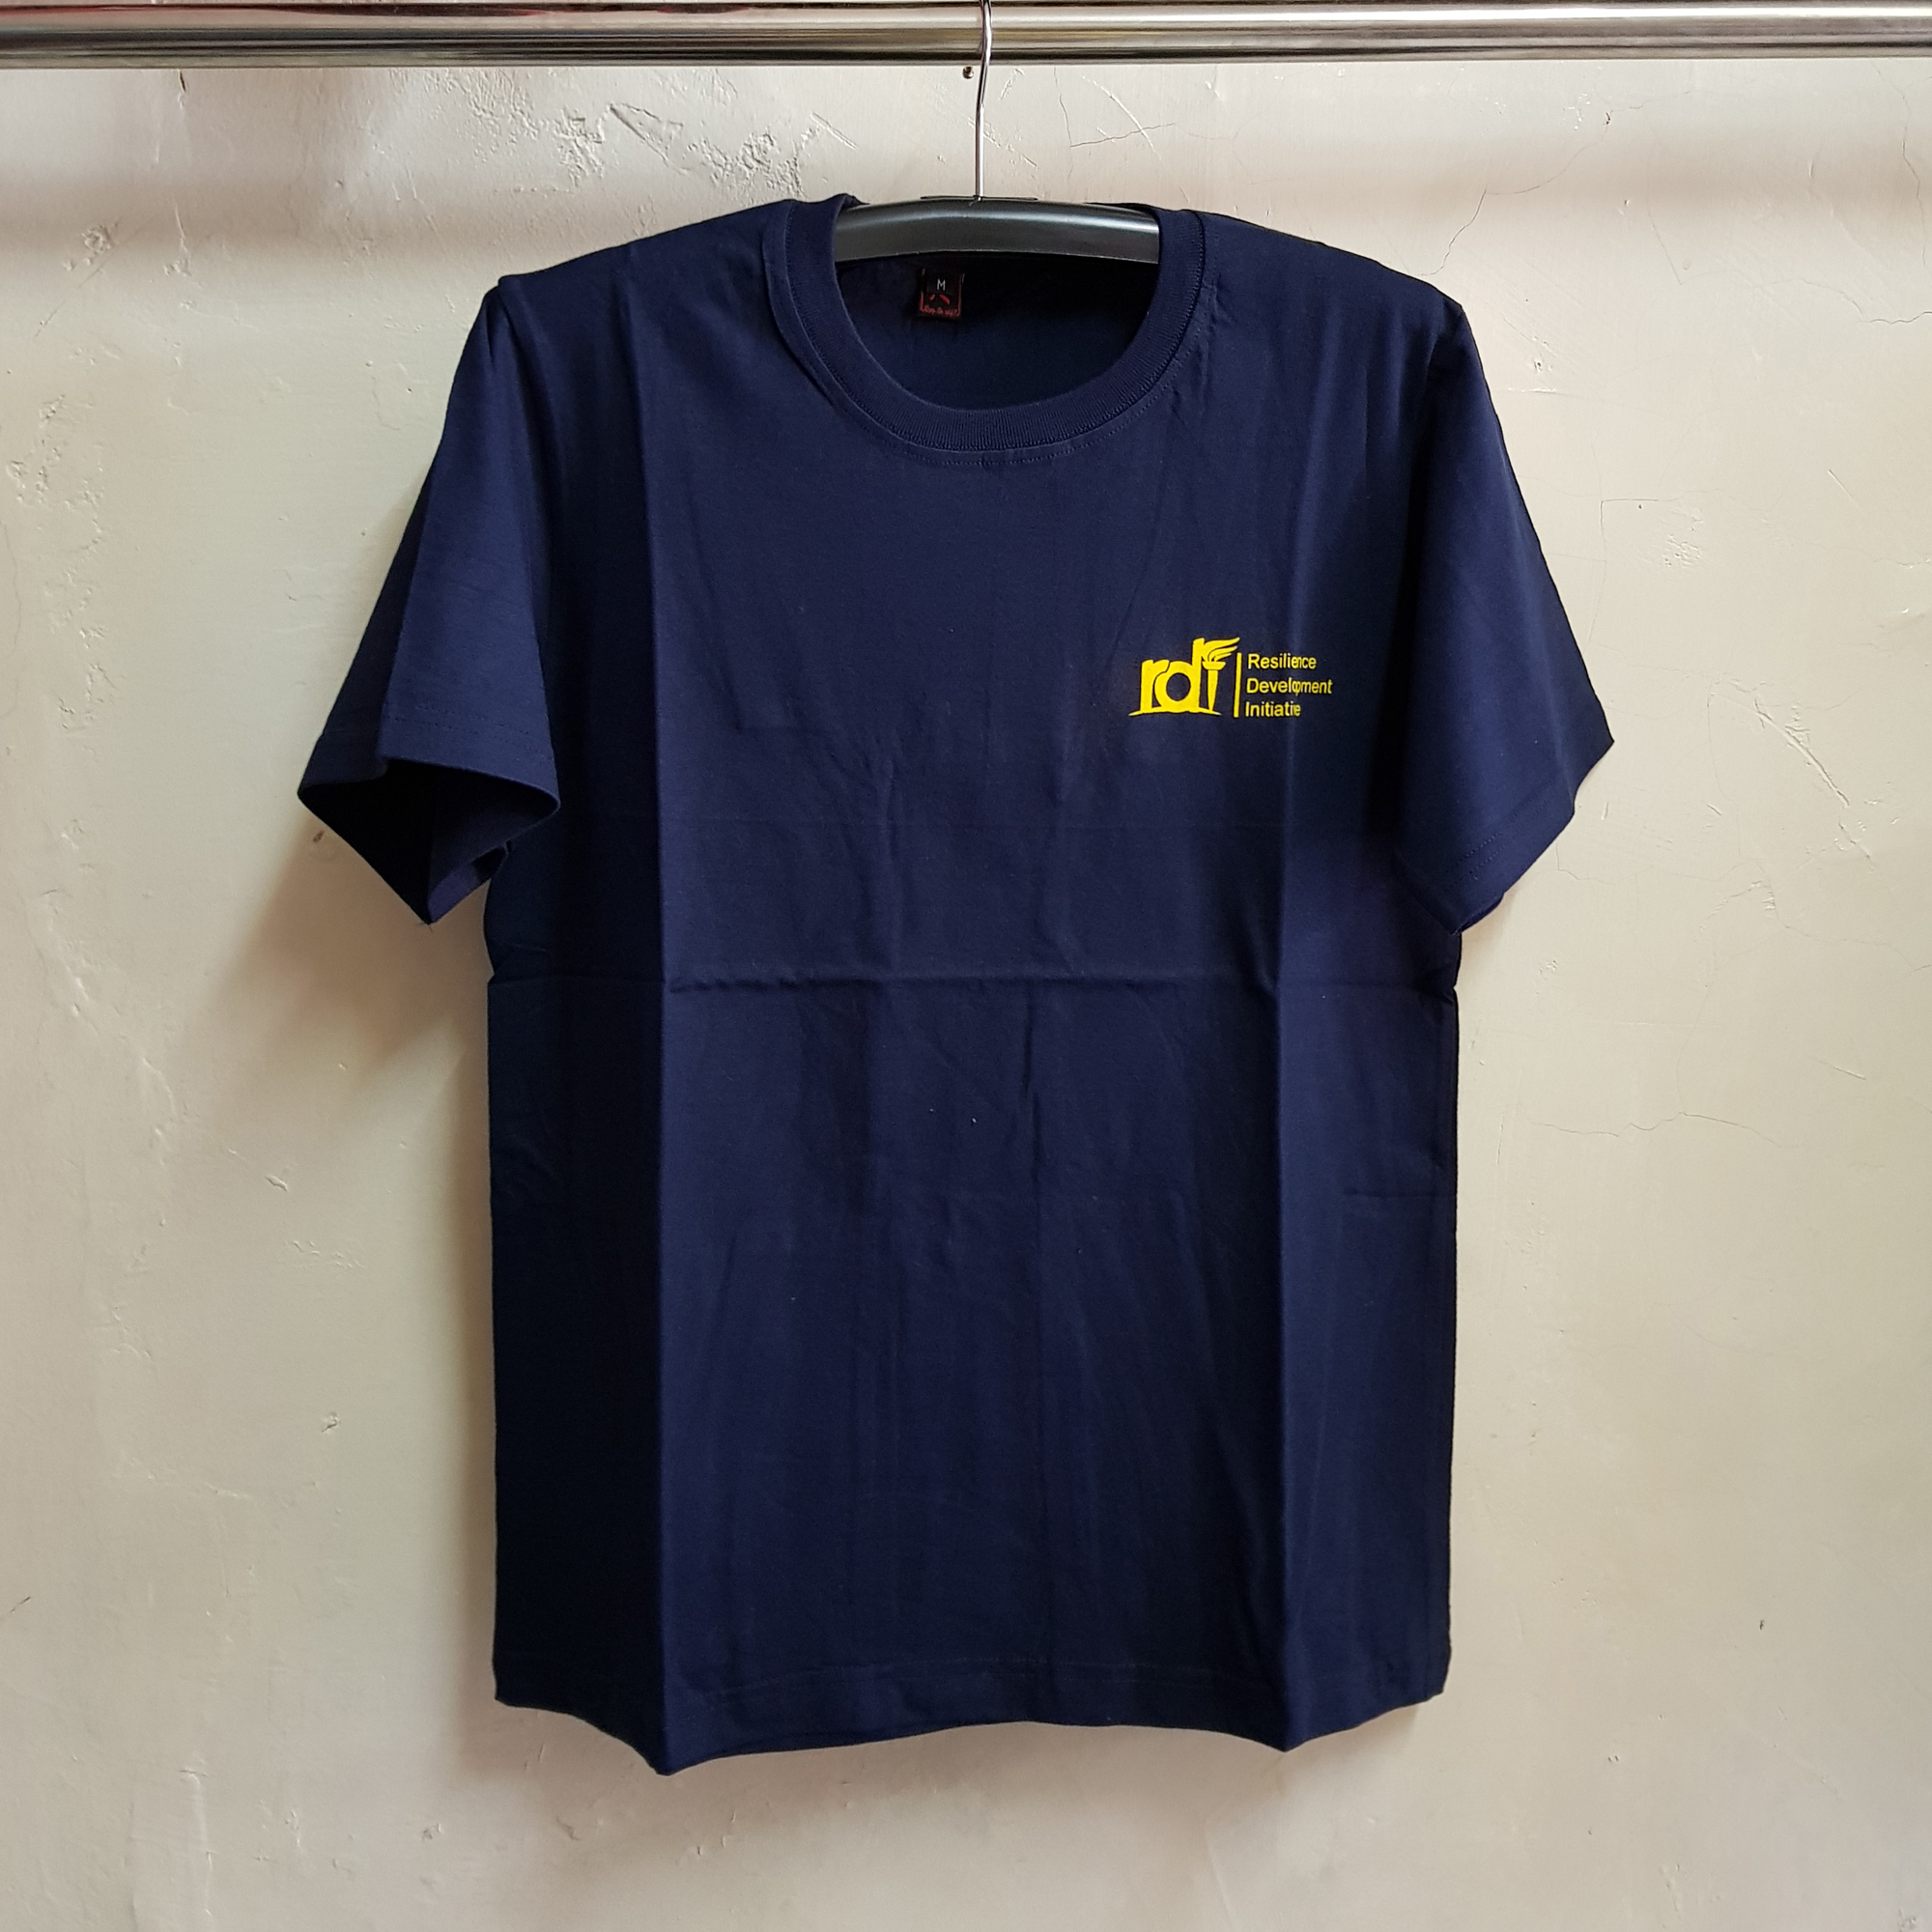 Kaos Cotton Combad RDI, Seragam Oblong